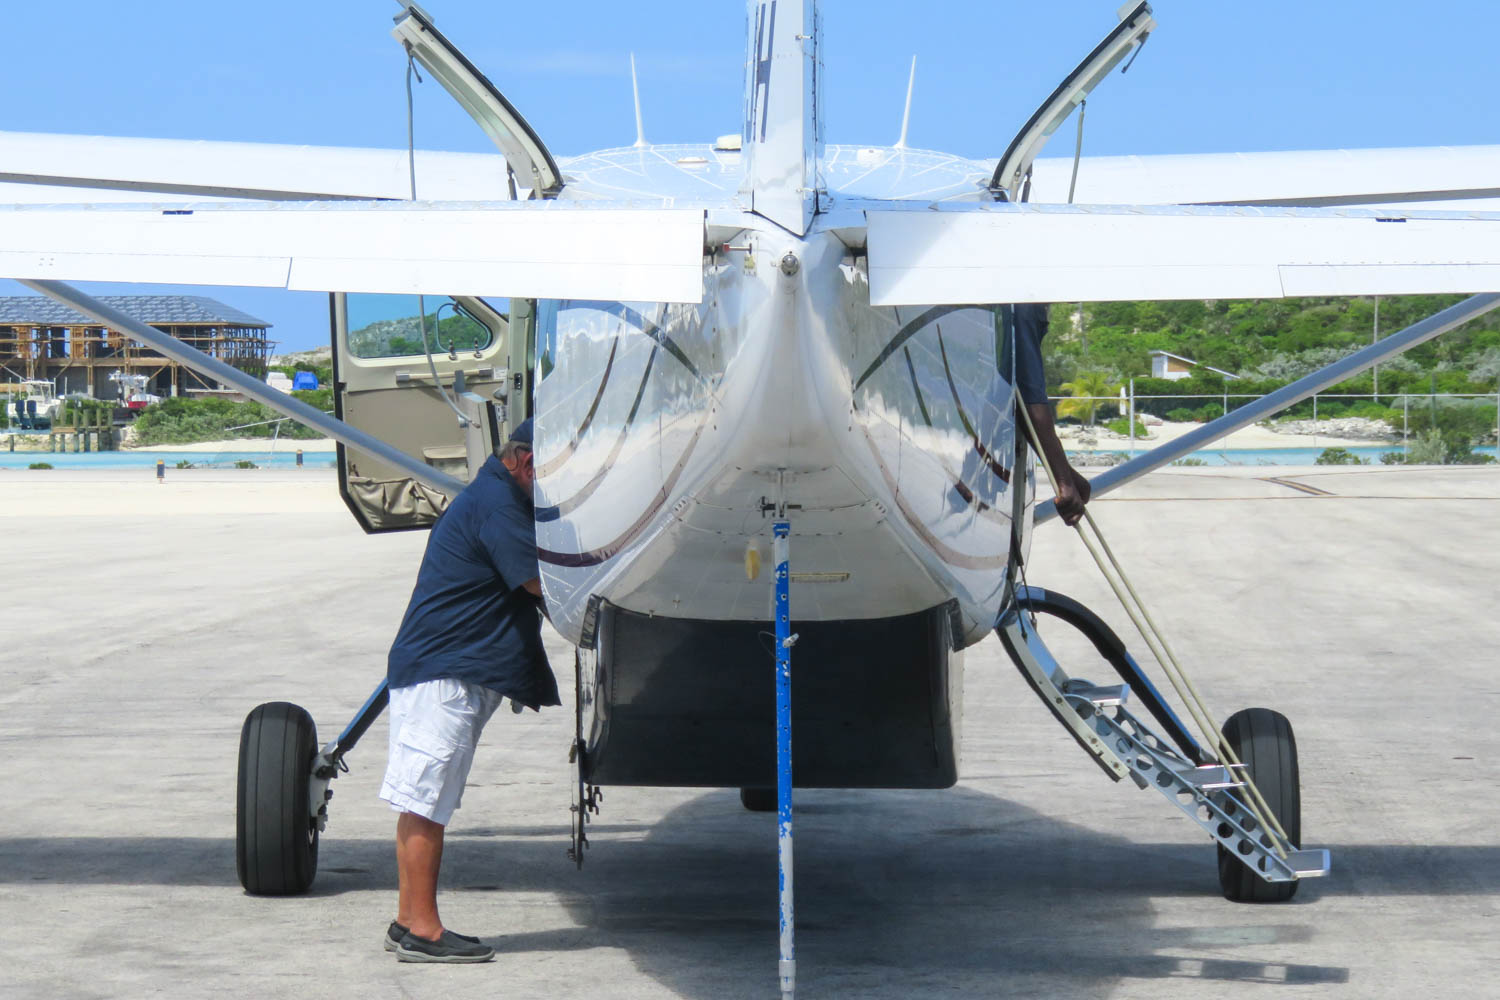 How to get from Nassau to Exuma ? Take a flight to Big Major Cay with Bahamas Air Tours Bahamas Day Trip and their Nassau to Pig Island excursion by plane. Fly from Nassau to Staniel Cay